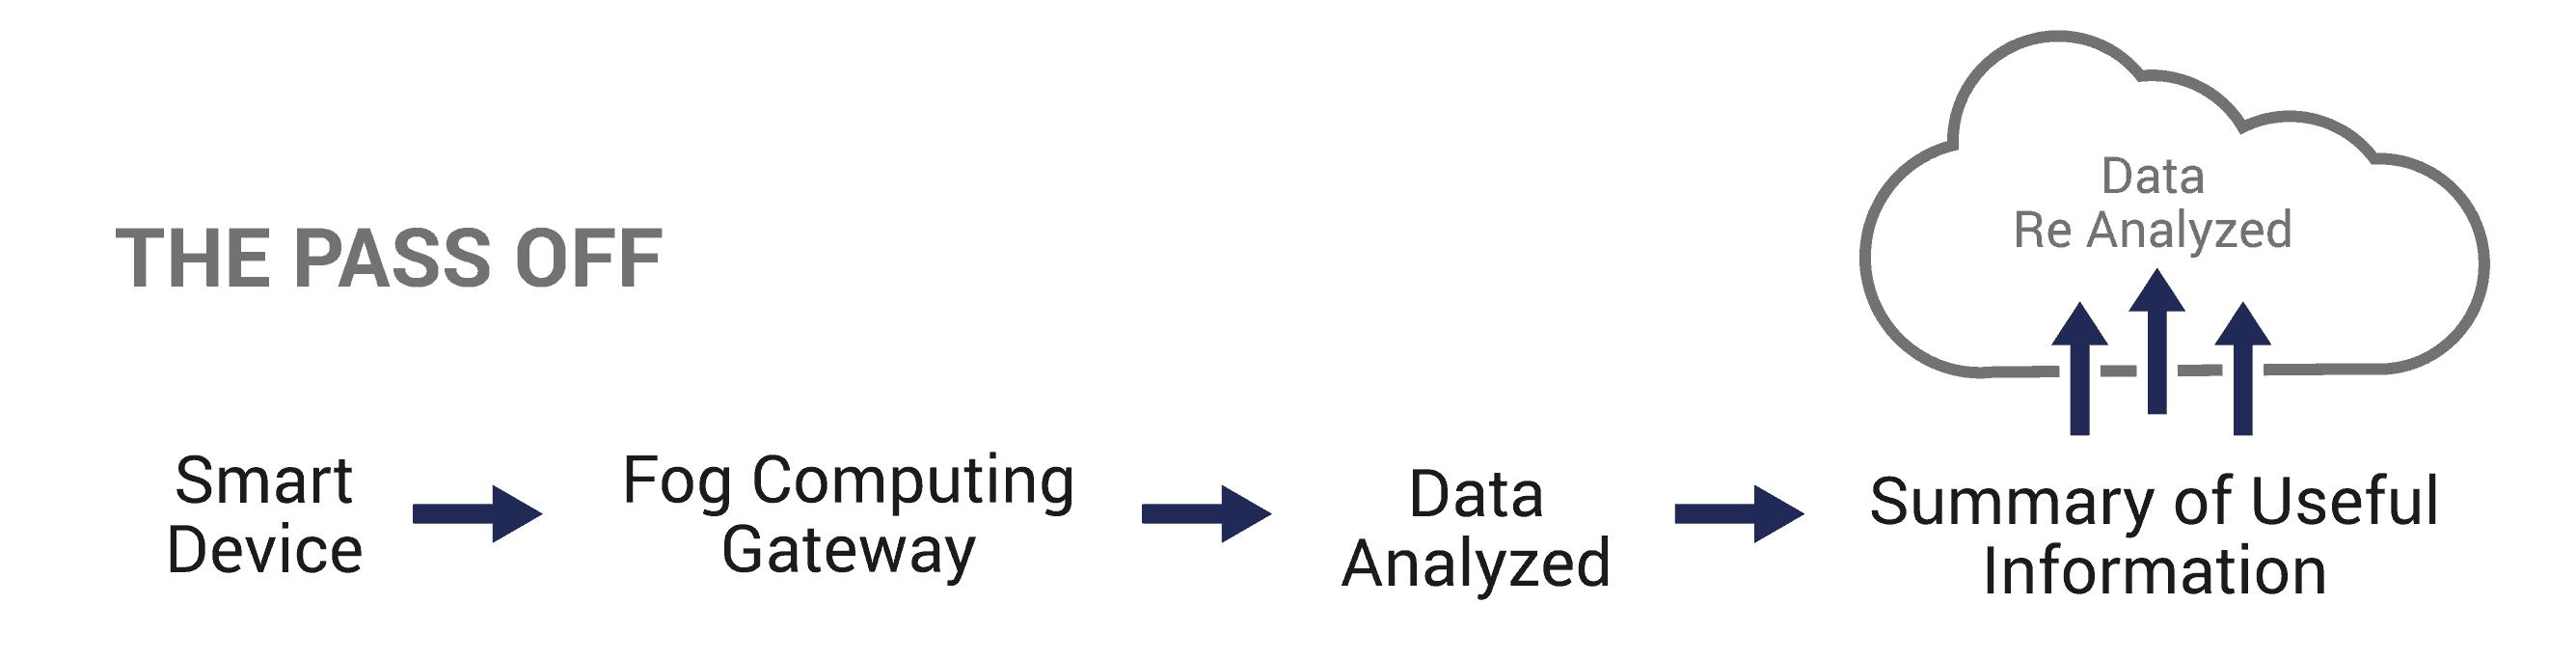 Diagram of how information is transferred in Fog Computing. From smart divice to fog computing gateway to data analysis to summary of useful information to the cloud where data is re-analyzed.